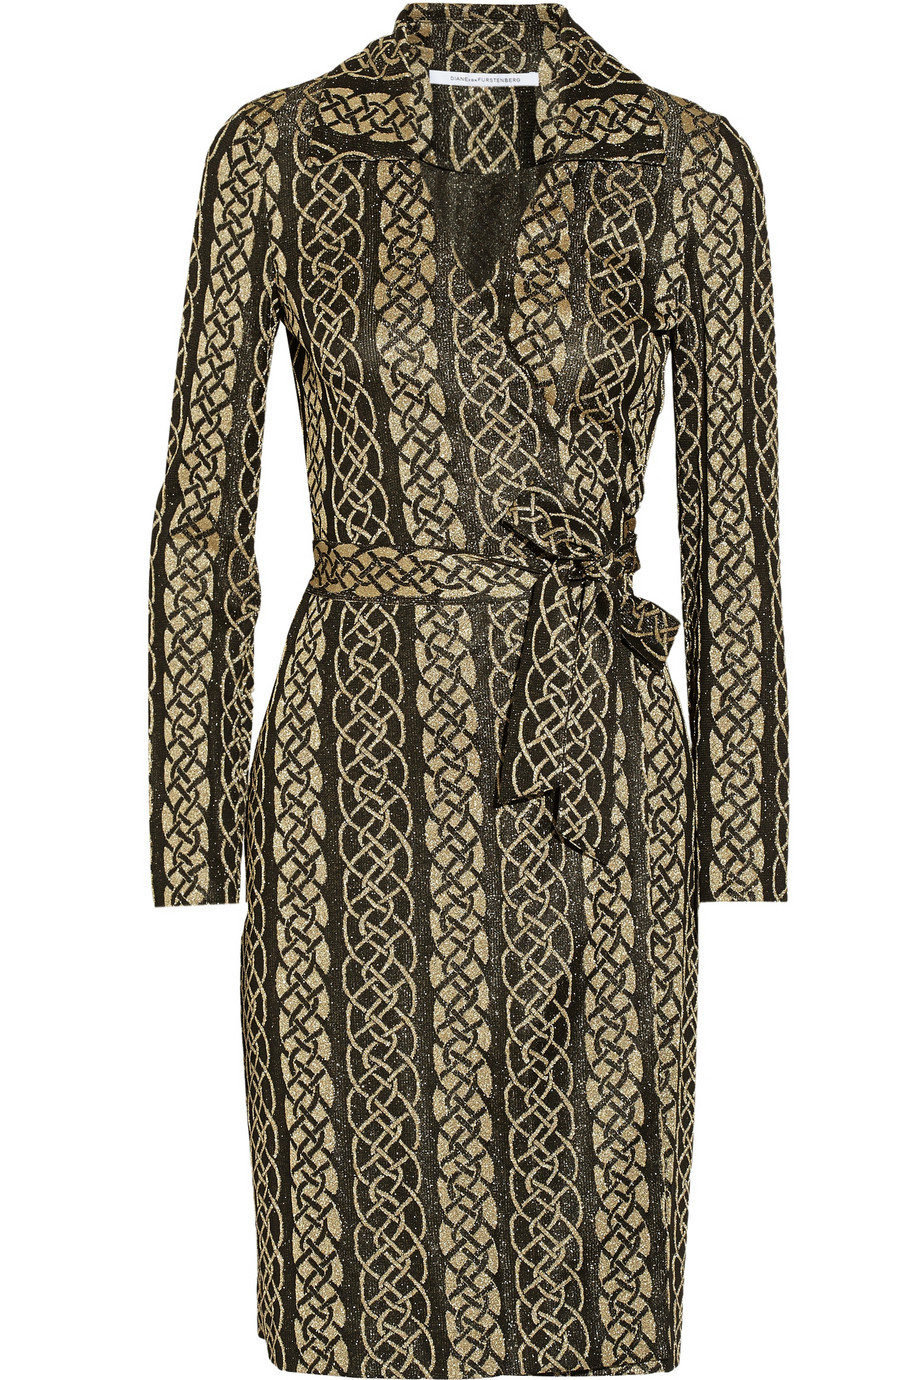 Dolores Metallic Knitted Wrap Dress Black - style: shift; neckline: low v-neck; waist detail: belted waist/tie at waist/drawstring; predominant colour: gold; secondary colour: black; occasions: evening; length: on the knee; fit: body skimming; sleeve length: long sleeve; sleeve style: standard; pattern type: knitted - other; pattern size: standard; pattern: patterned/print; texture group: jersey - stretchy/drapey; embellishment: glitter; season: a/w 2015; wardrobe: event